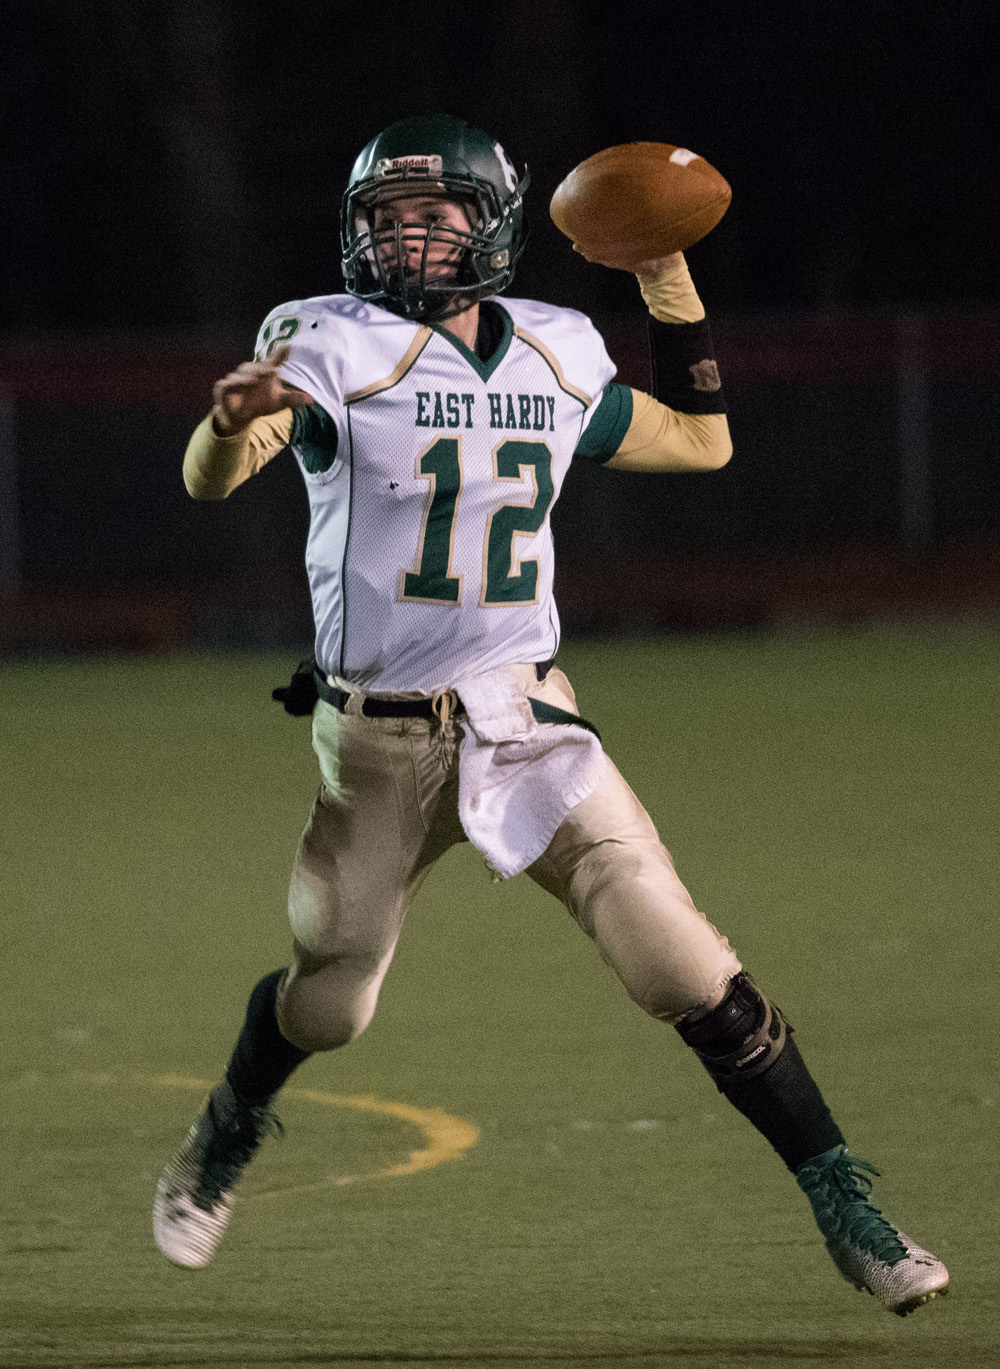 East Hardy junior quarterback Corey McDonald has over 4,000 yards of total offense on the season.